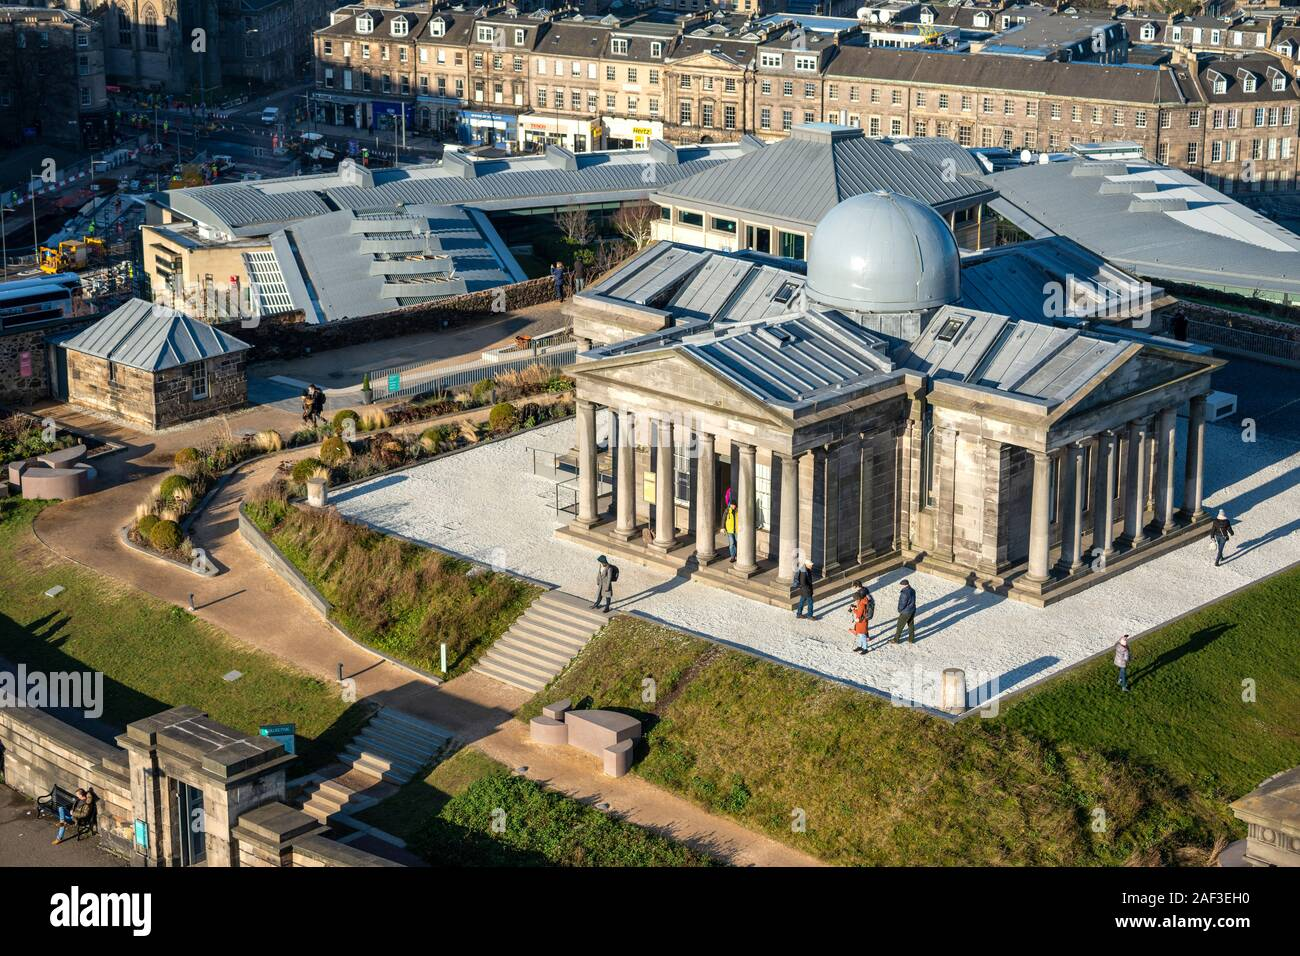 Aerial view of restored City Observatory, now the Collective Arts Centre, on Calton Hill, Edinburgh, Scotland, UK Stock Photo